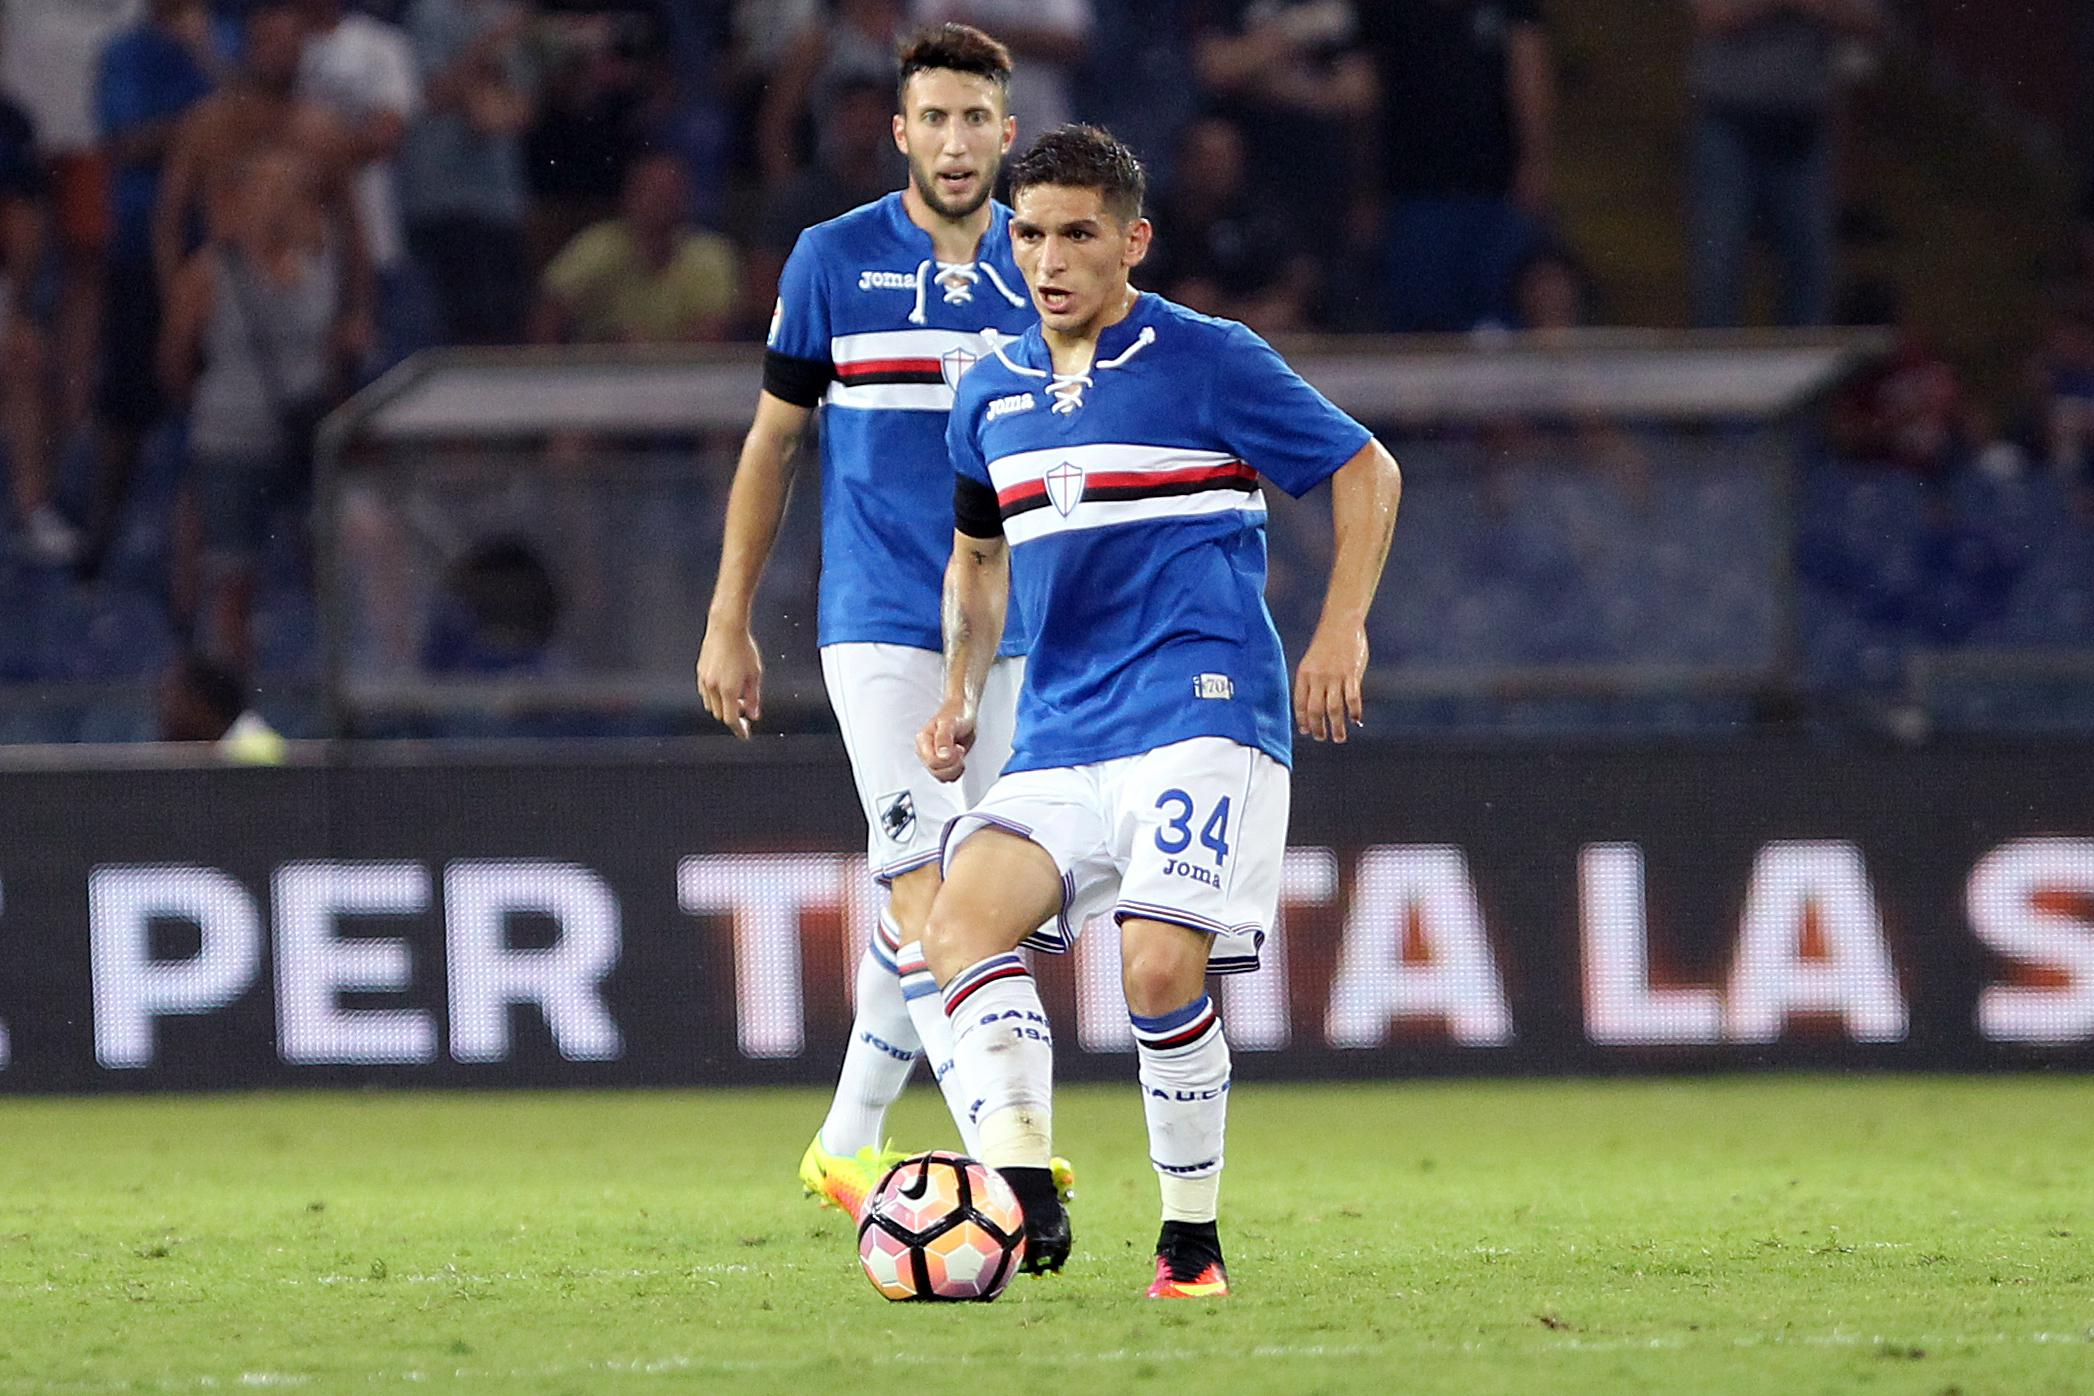 Sampdoria vs Atalanta